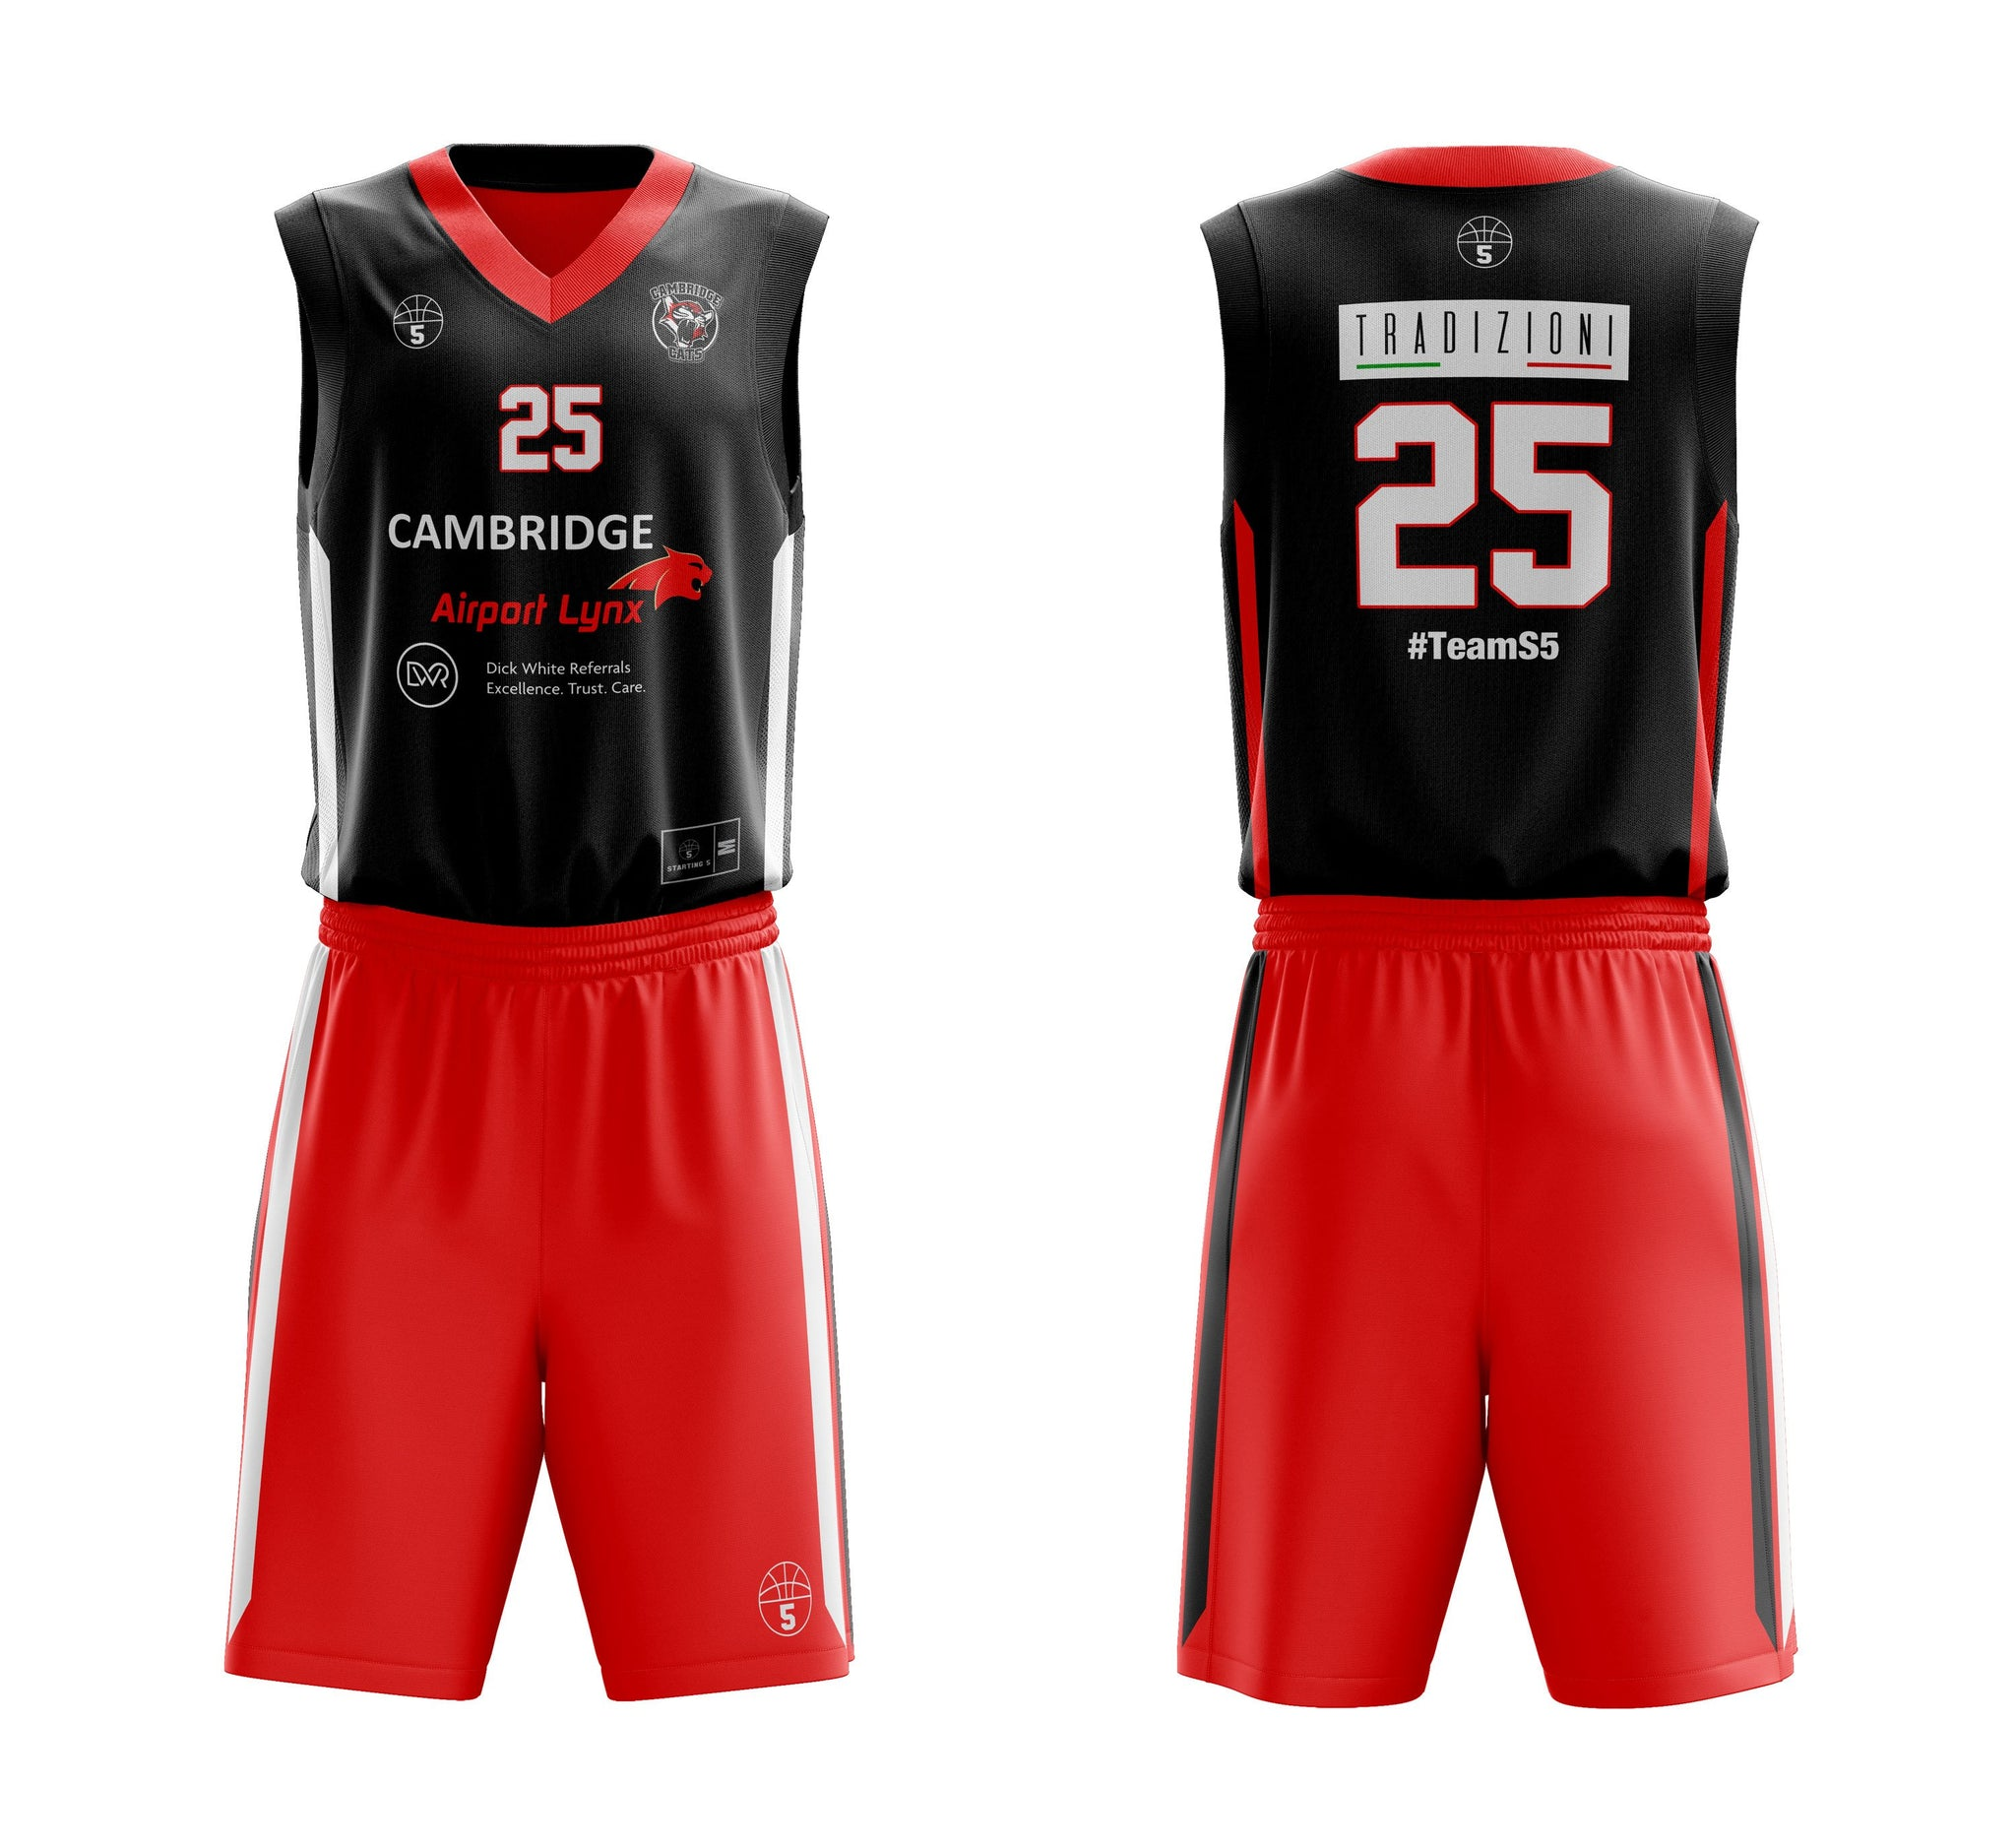 STARTING 5 Sublimated Reversible Vest & Single-Sided Shorts Example 1